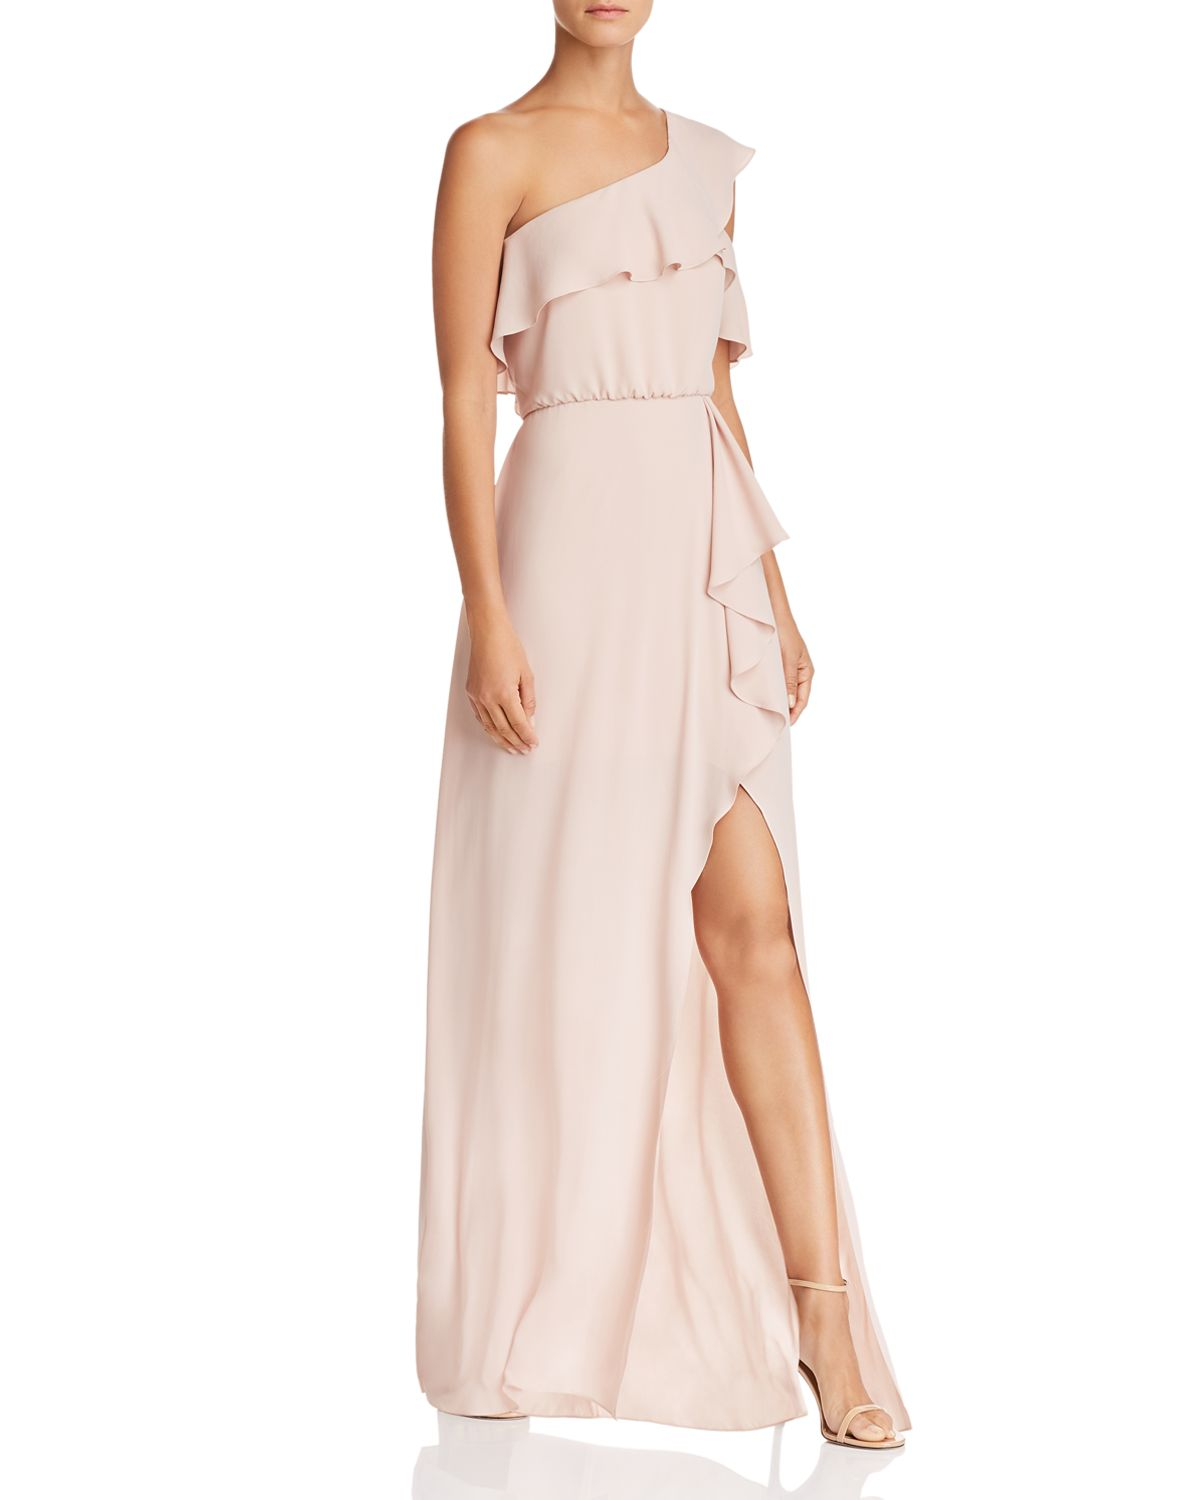 One Shoulder Ruffle Trim Gown   100 Percents Exclusive by Bcbgmaxazria